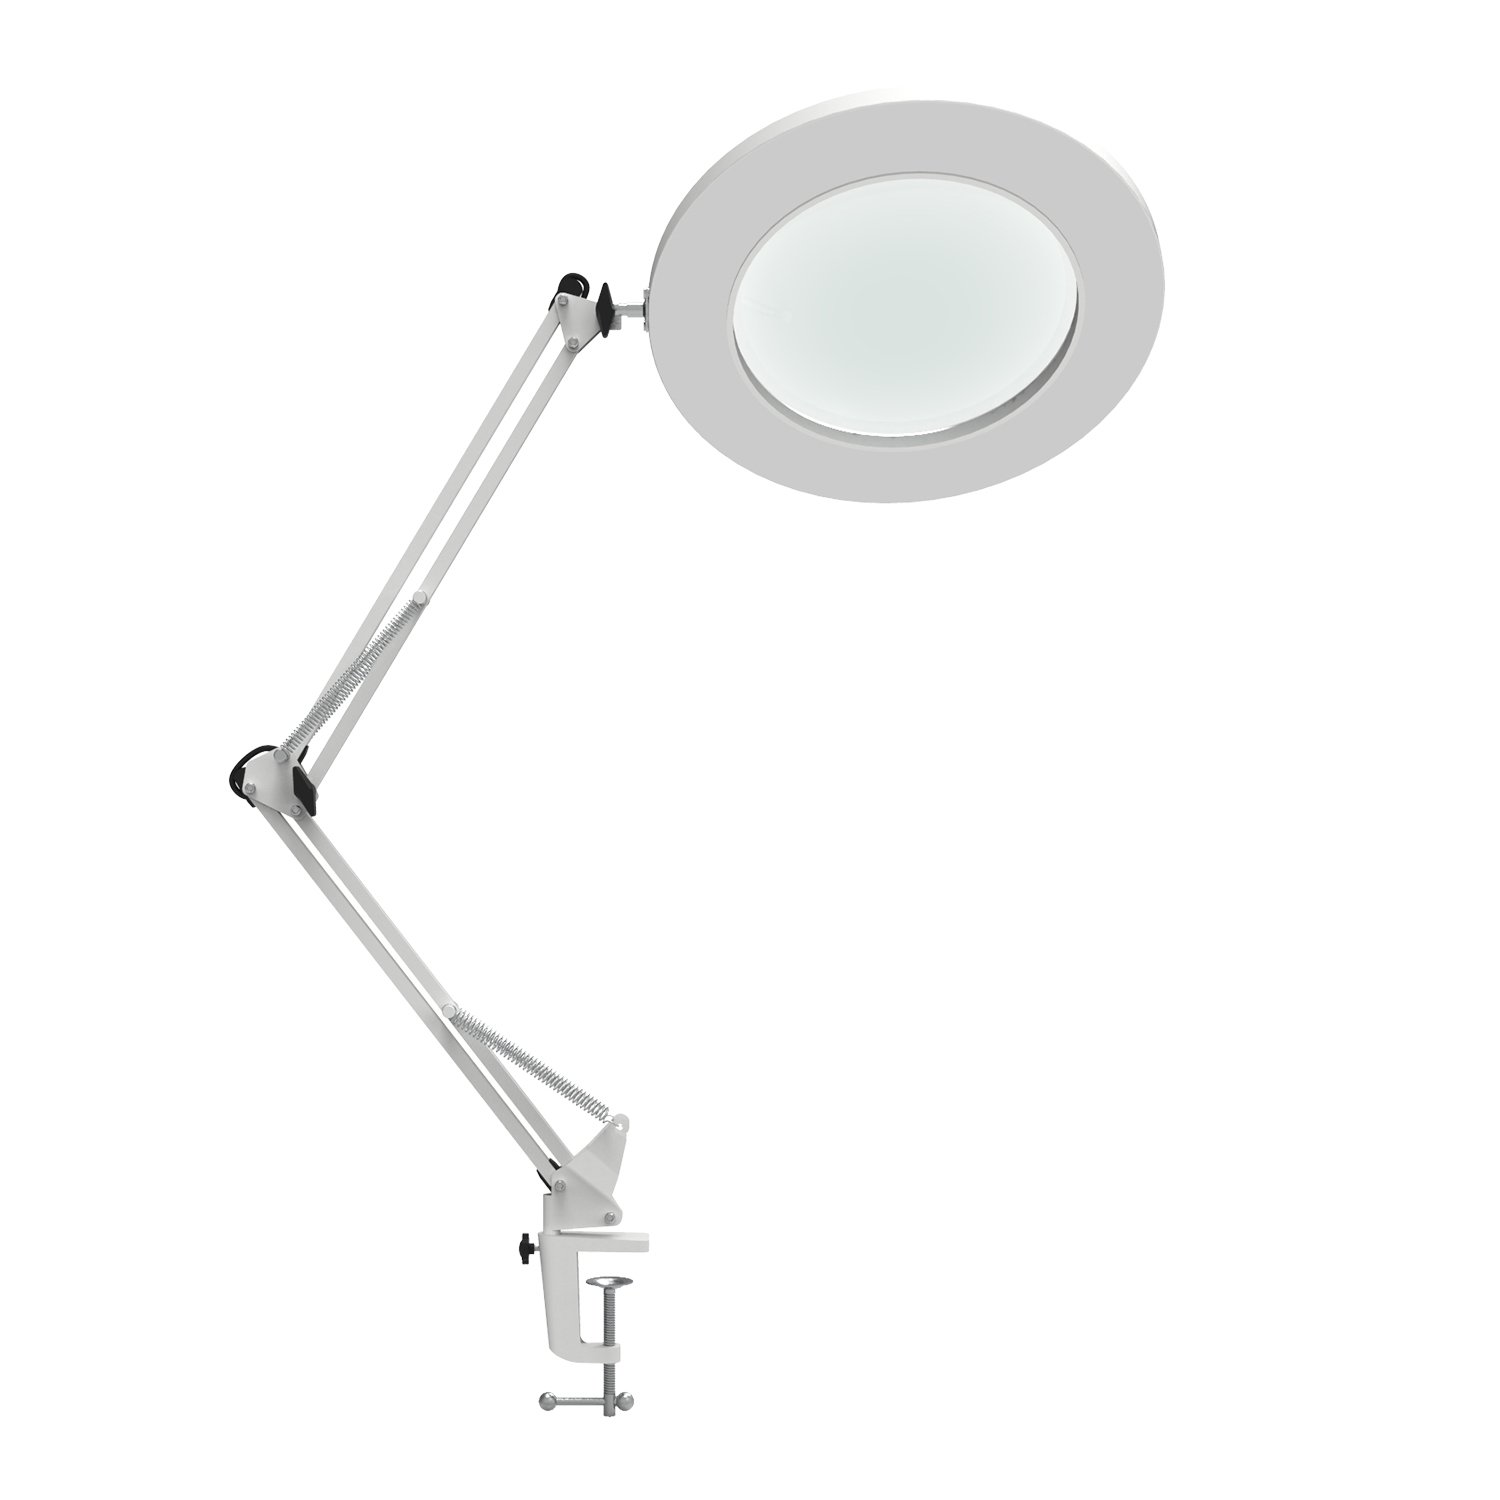 YOUKOYI LED Magnifying Lamp Metal Swing Arm Magnifier Lamp - Stepless Dimming, 3 Color Modes, 5X Magnification, 4.1'' Diameter Glass Lens, Adjustable Industrial Clamp for Reading/Office/Work (White) by YOUKOYI